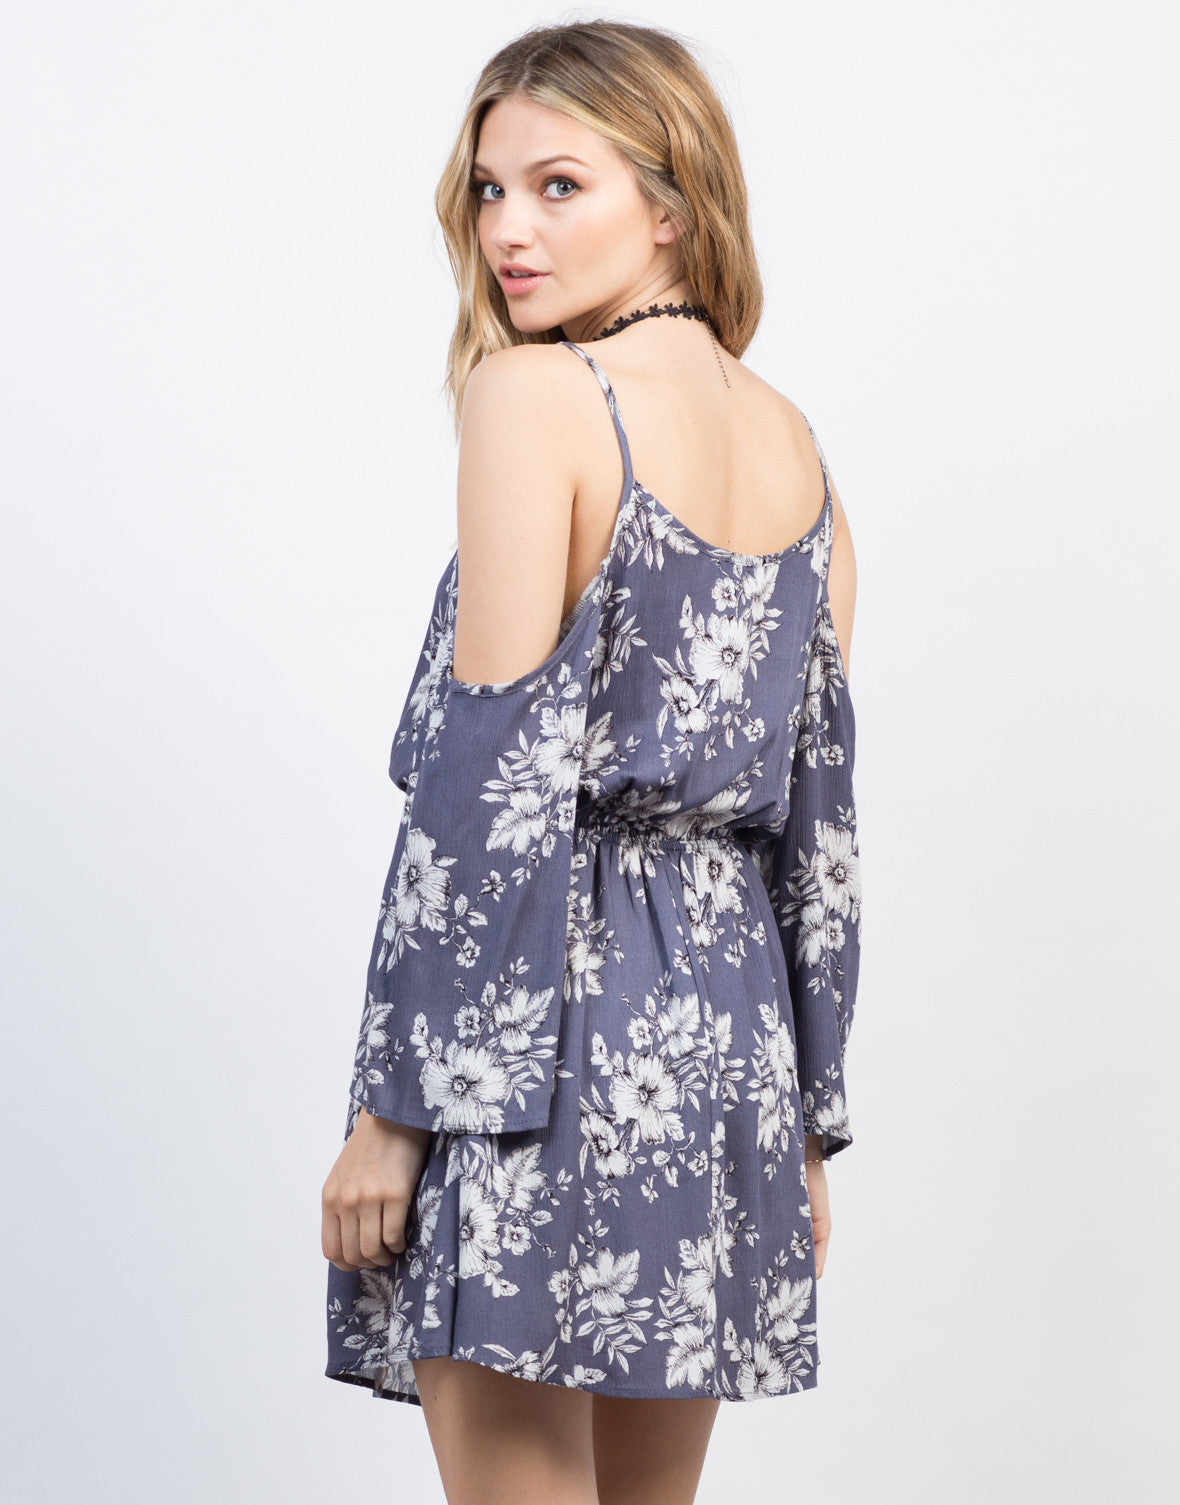 Back View of Cold Shoulder Floral Dress